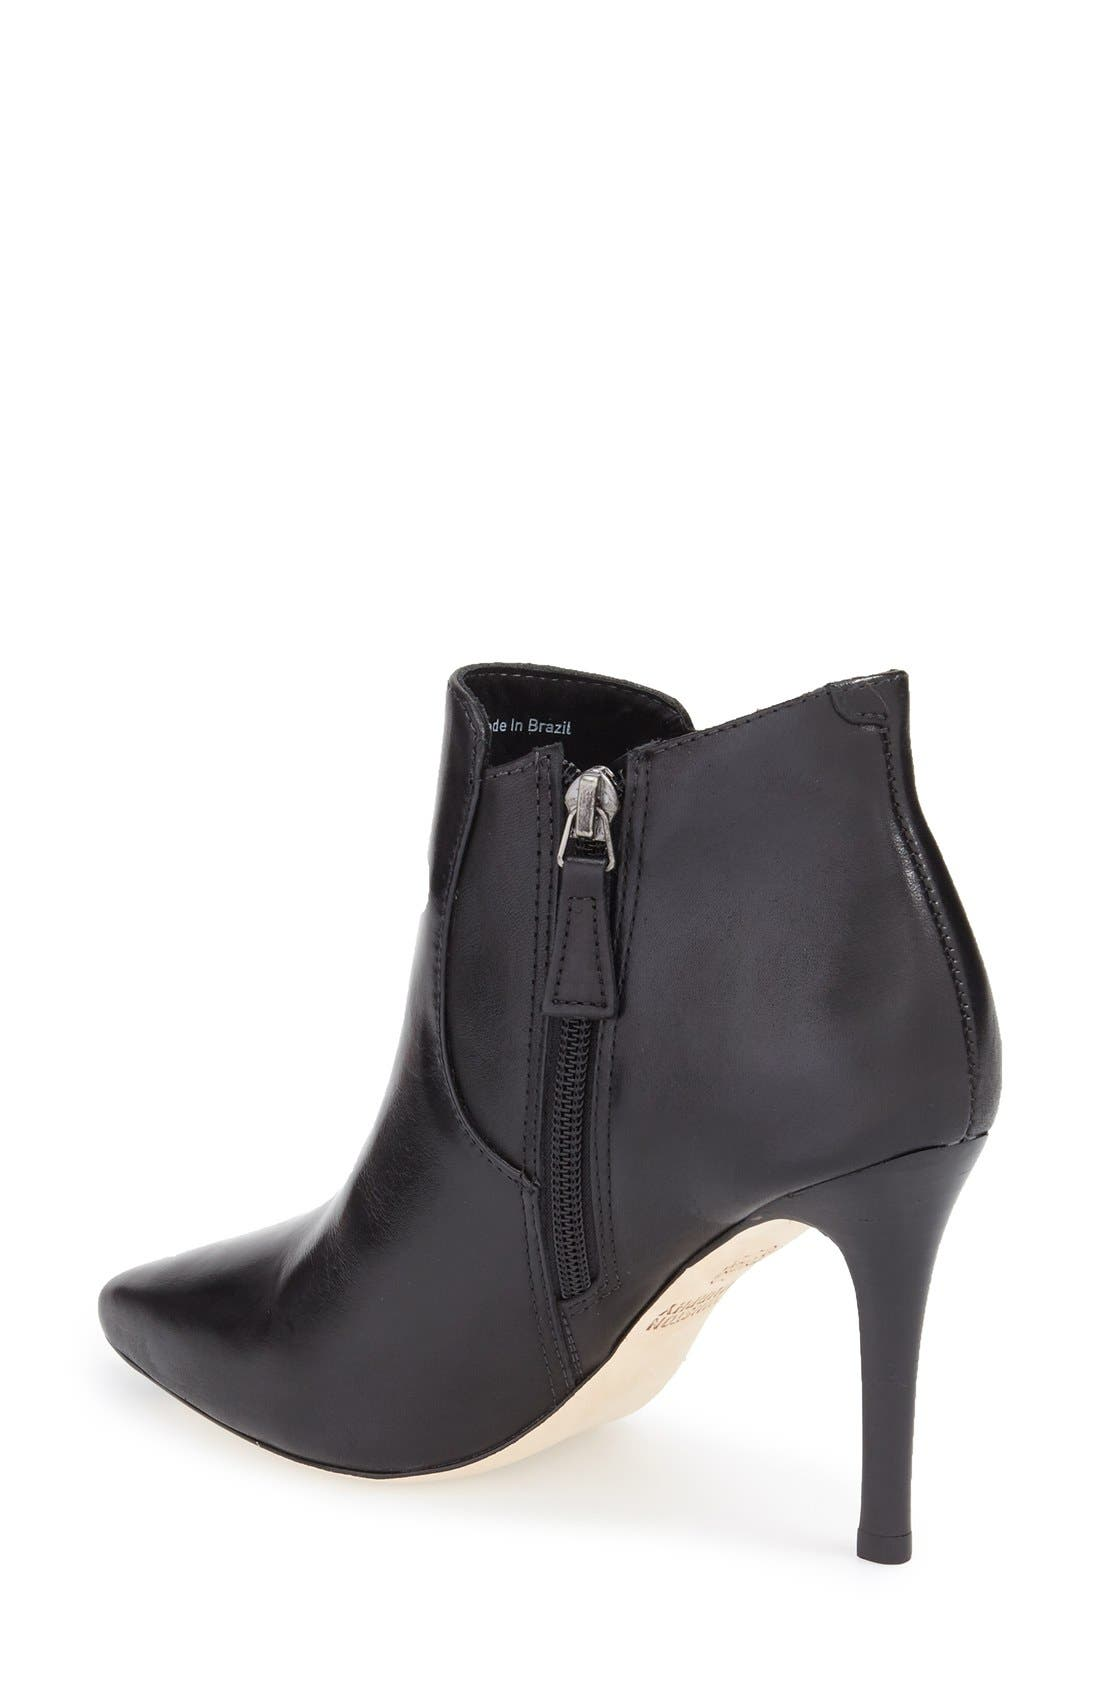 'Valerie' Pointy Toe Bootie,                             Alternate thumbnail 2, color,                             001